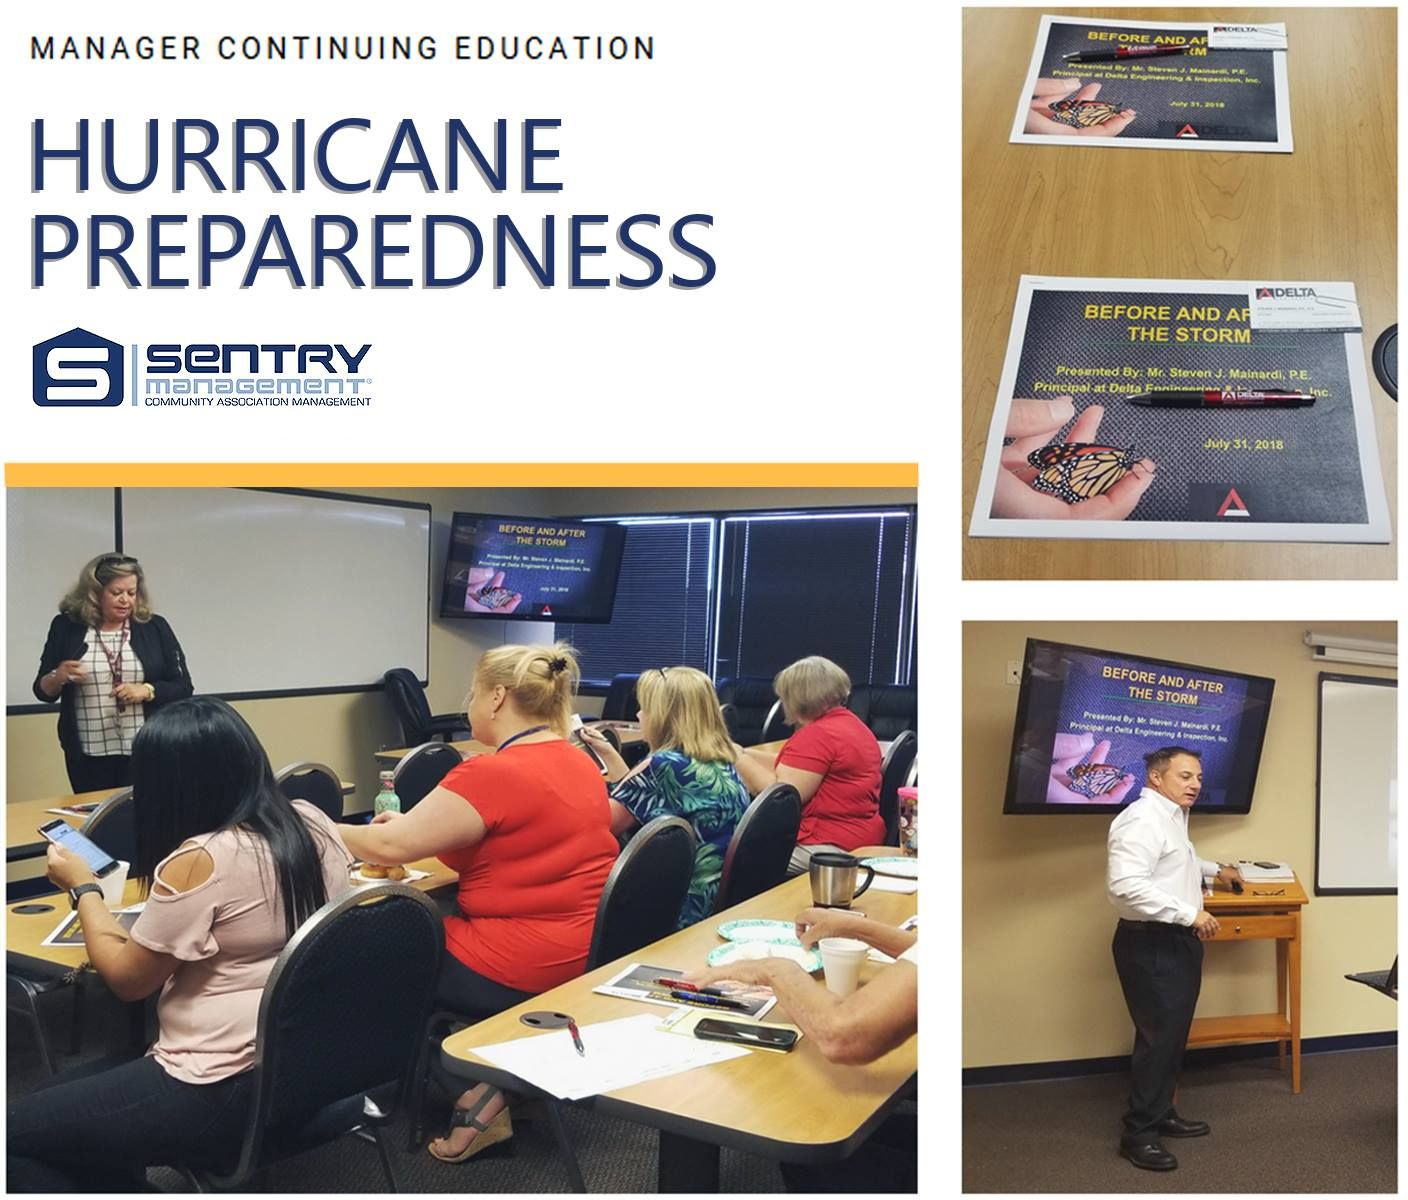 Community Association Managers At The Longwood Fl Office Attended A Continuing Education Class This Morn Continuing Education Hurricane Preparedness Education